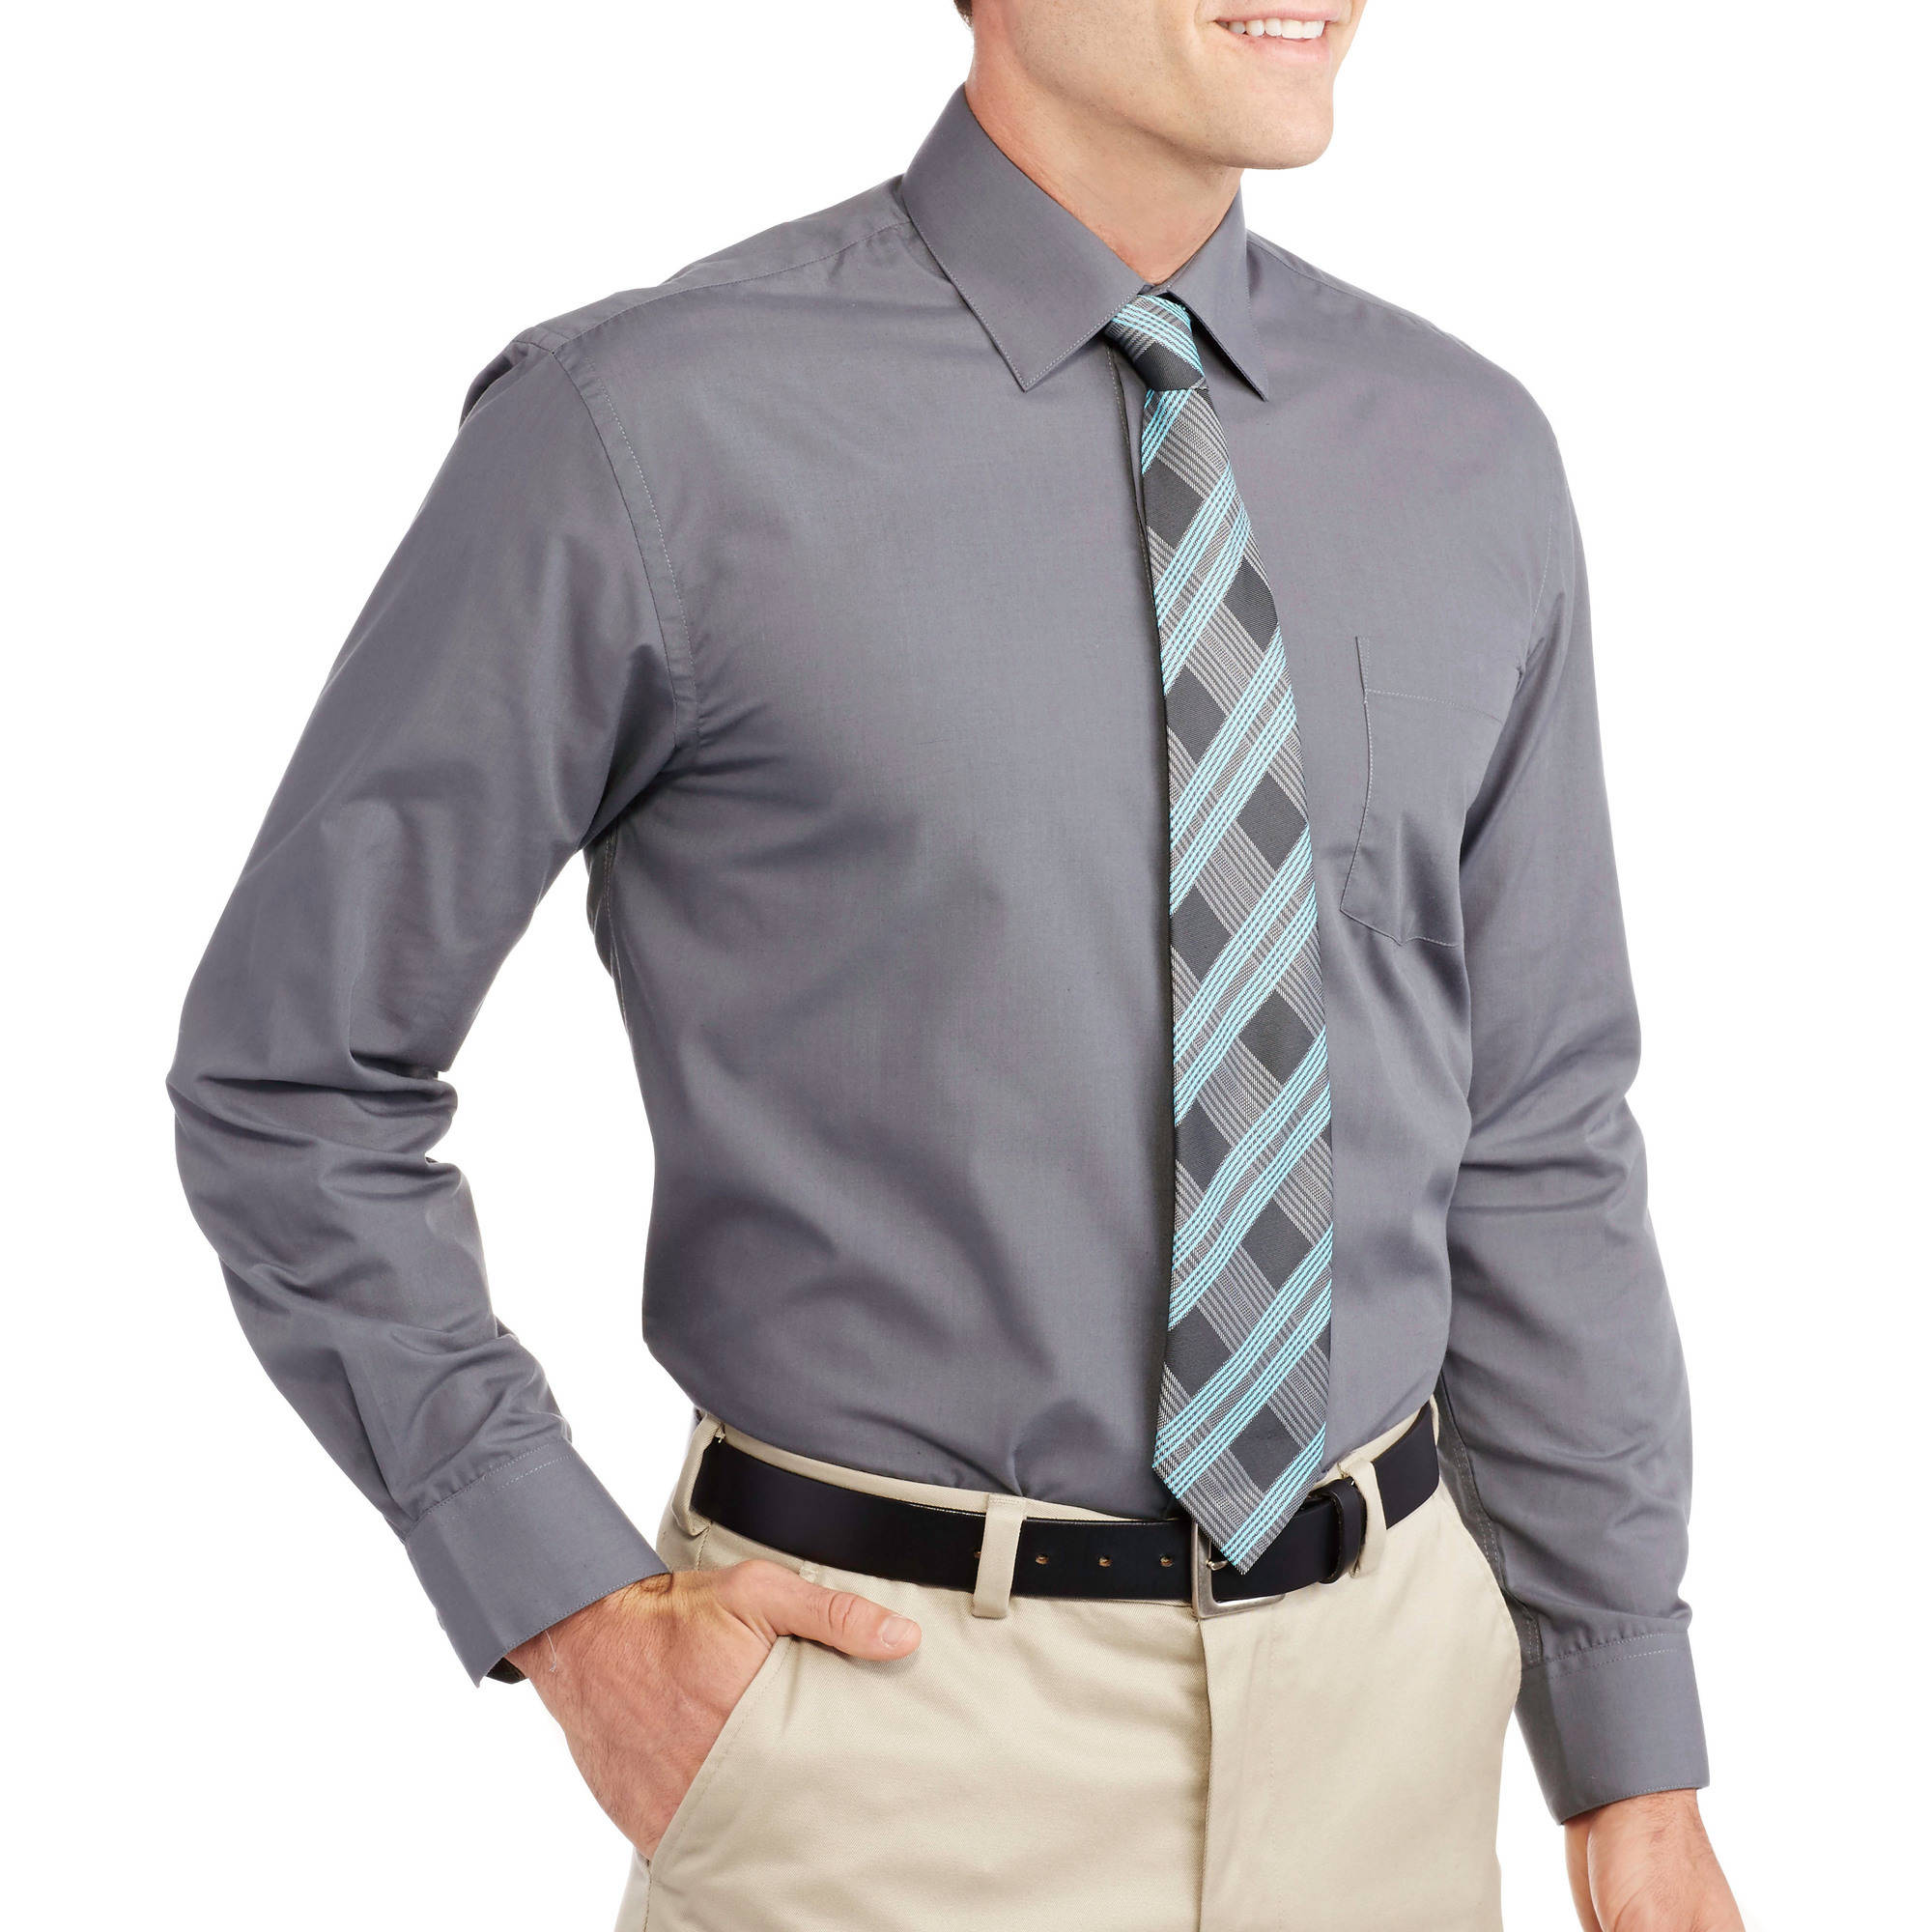 Men's Solid Dress Shirt with Matching Tie